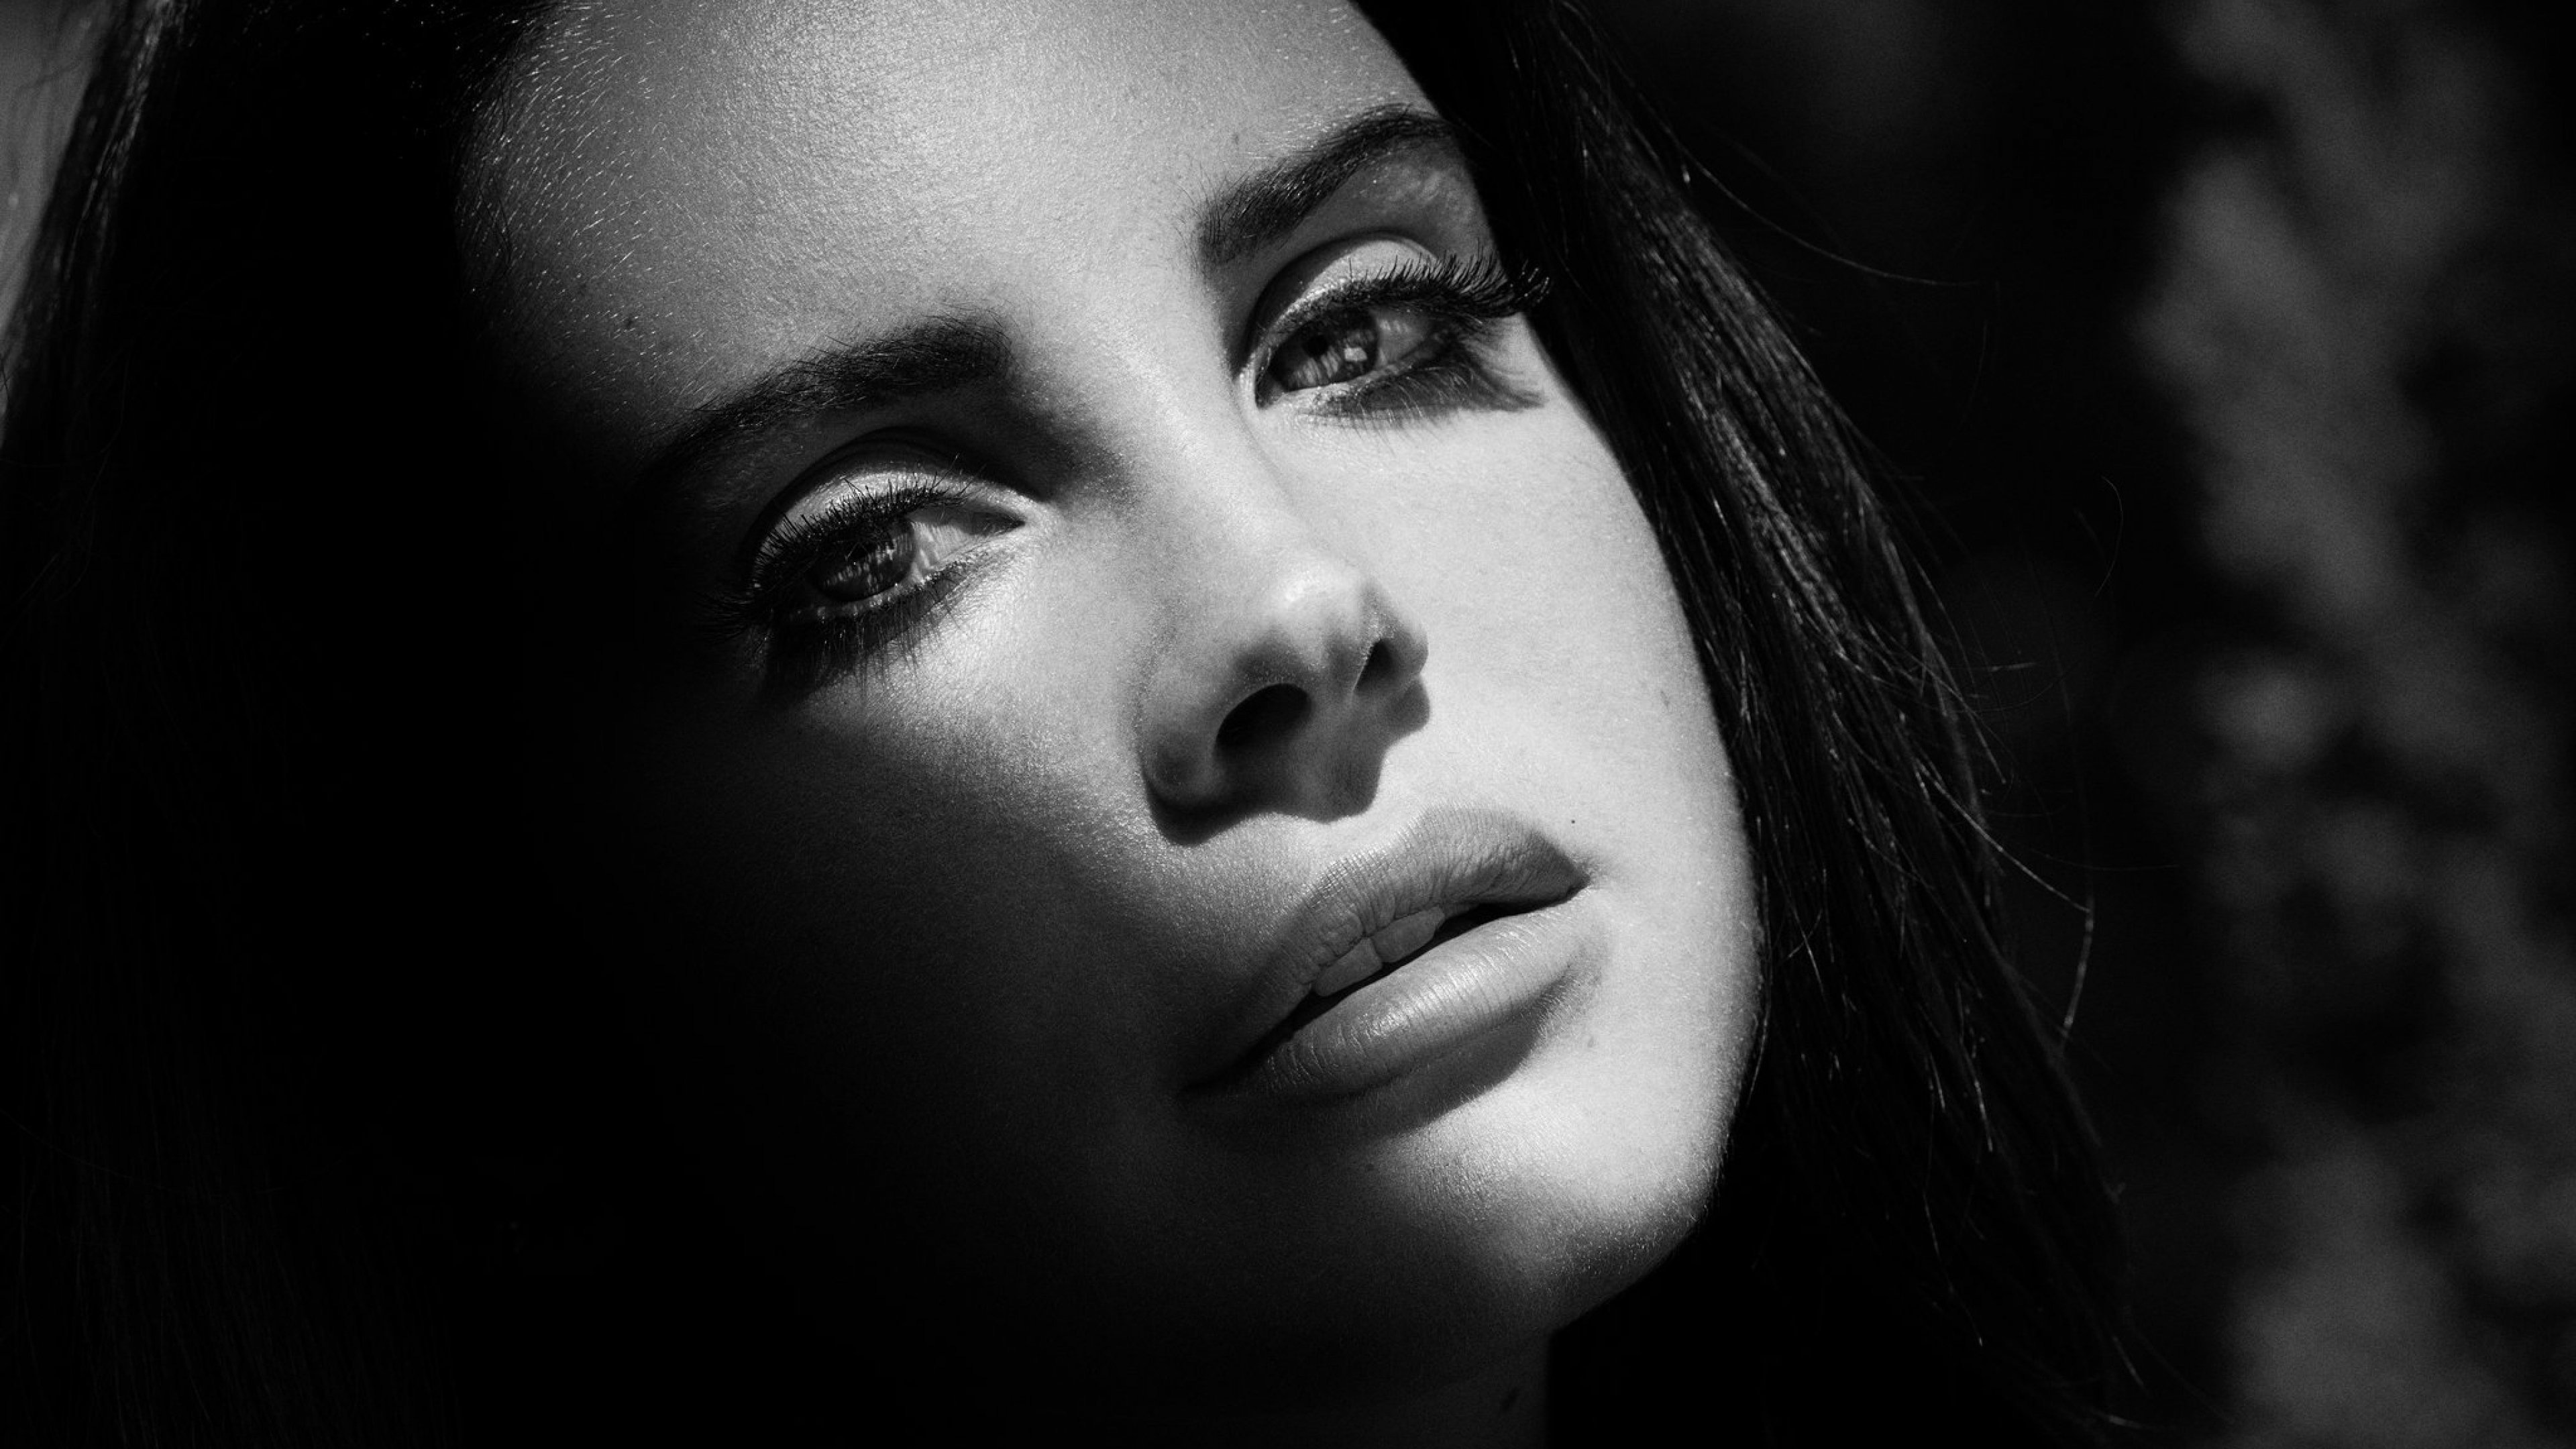 Lana Del Rey Monochrome Hd Music 4k Wallpapers Images Backgrounds Photos And Pictures